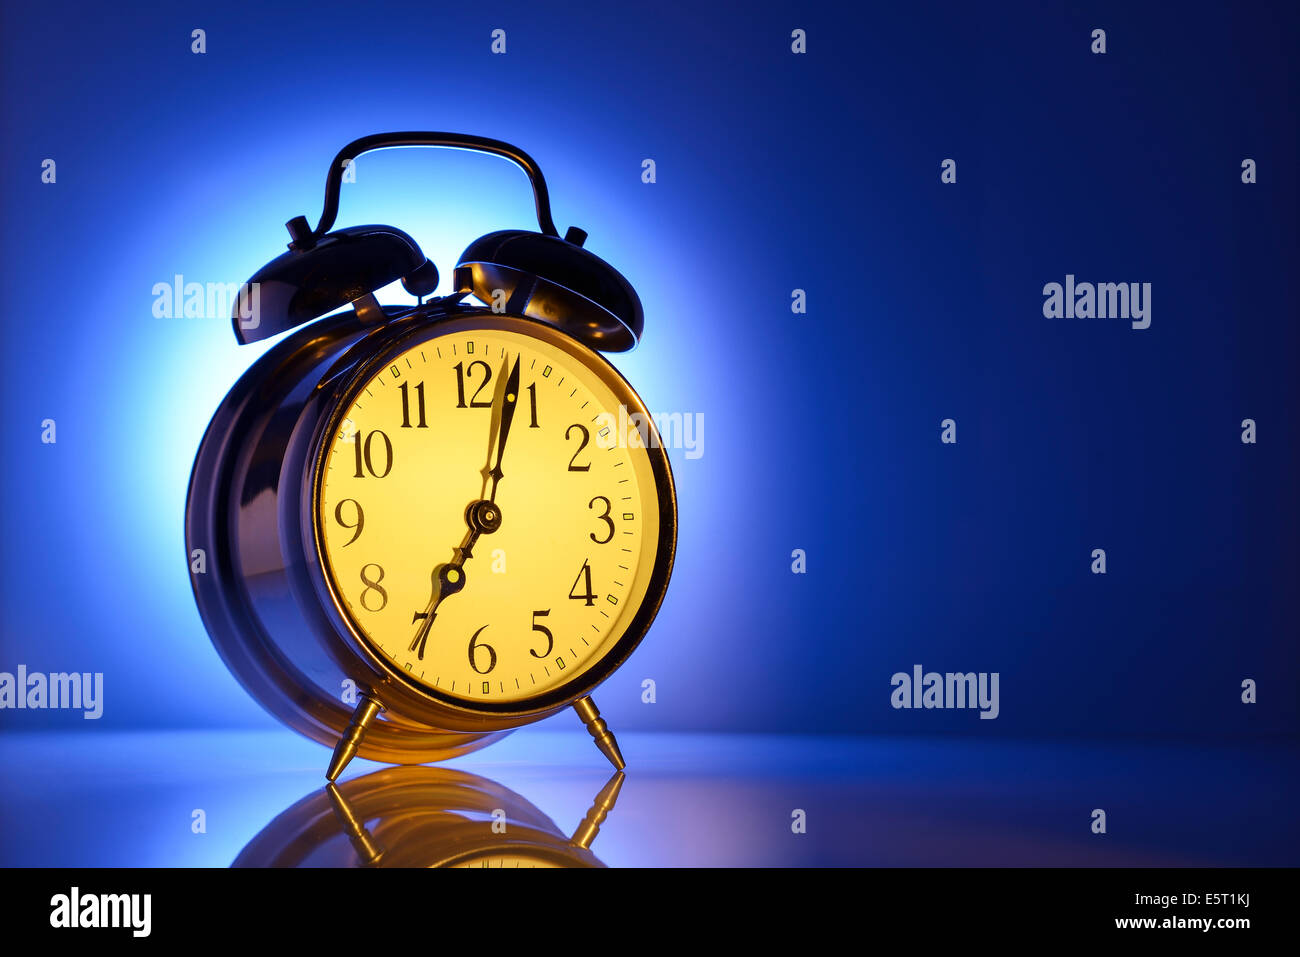 A classic alarm clock set for 7am - Stock Image